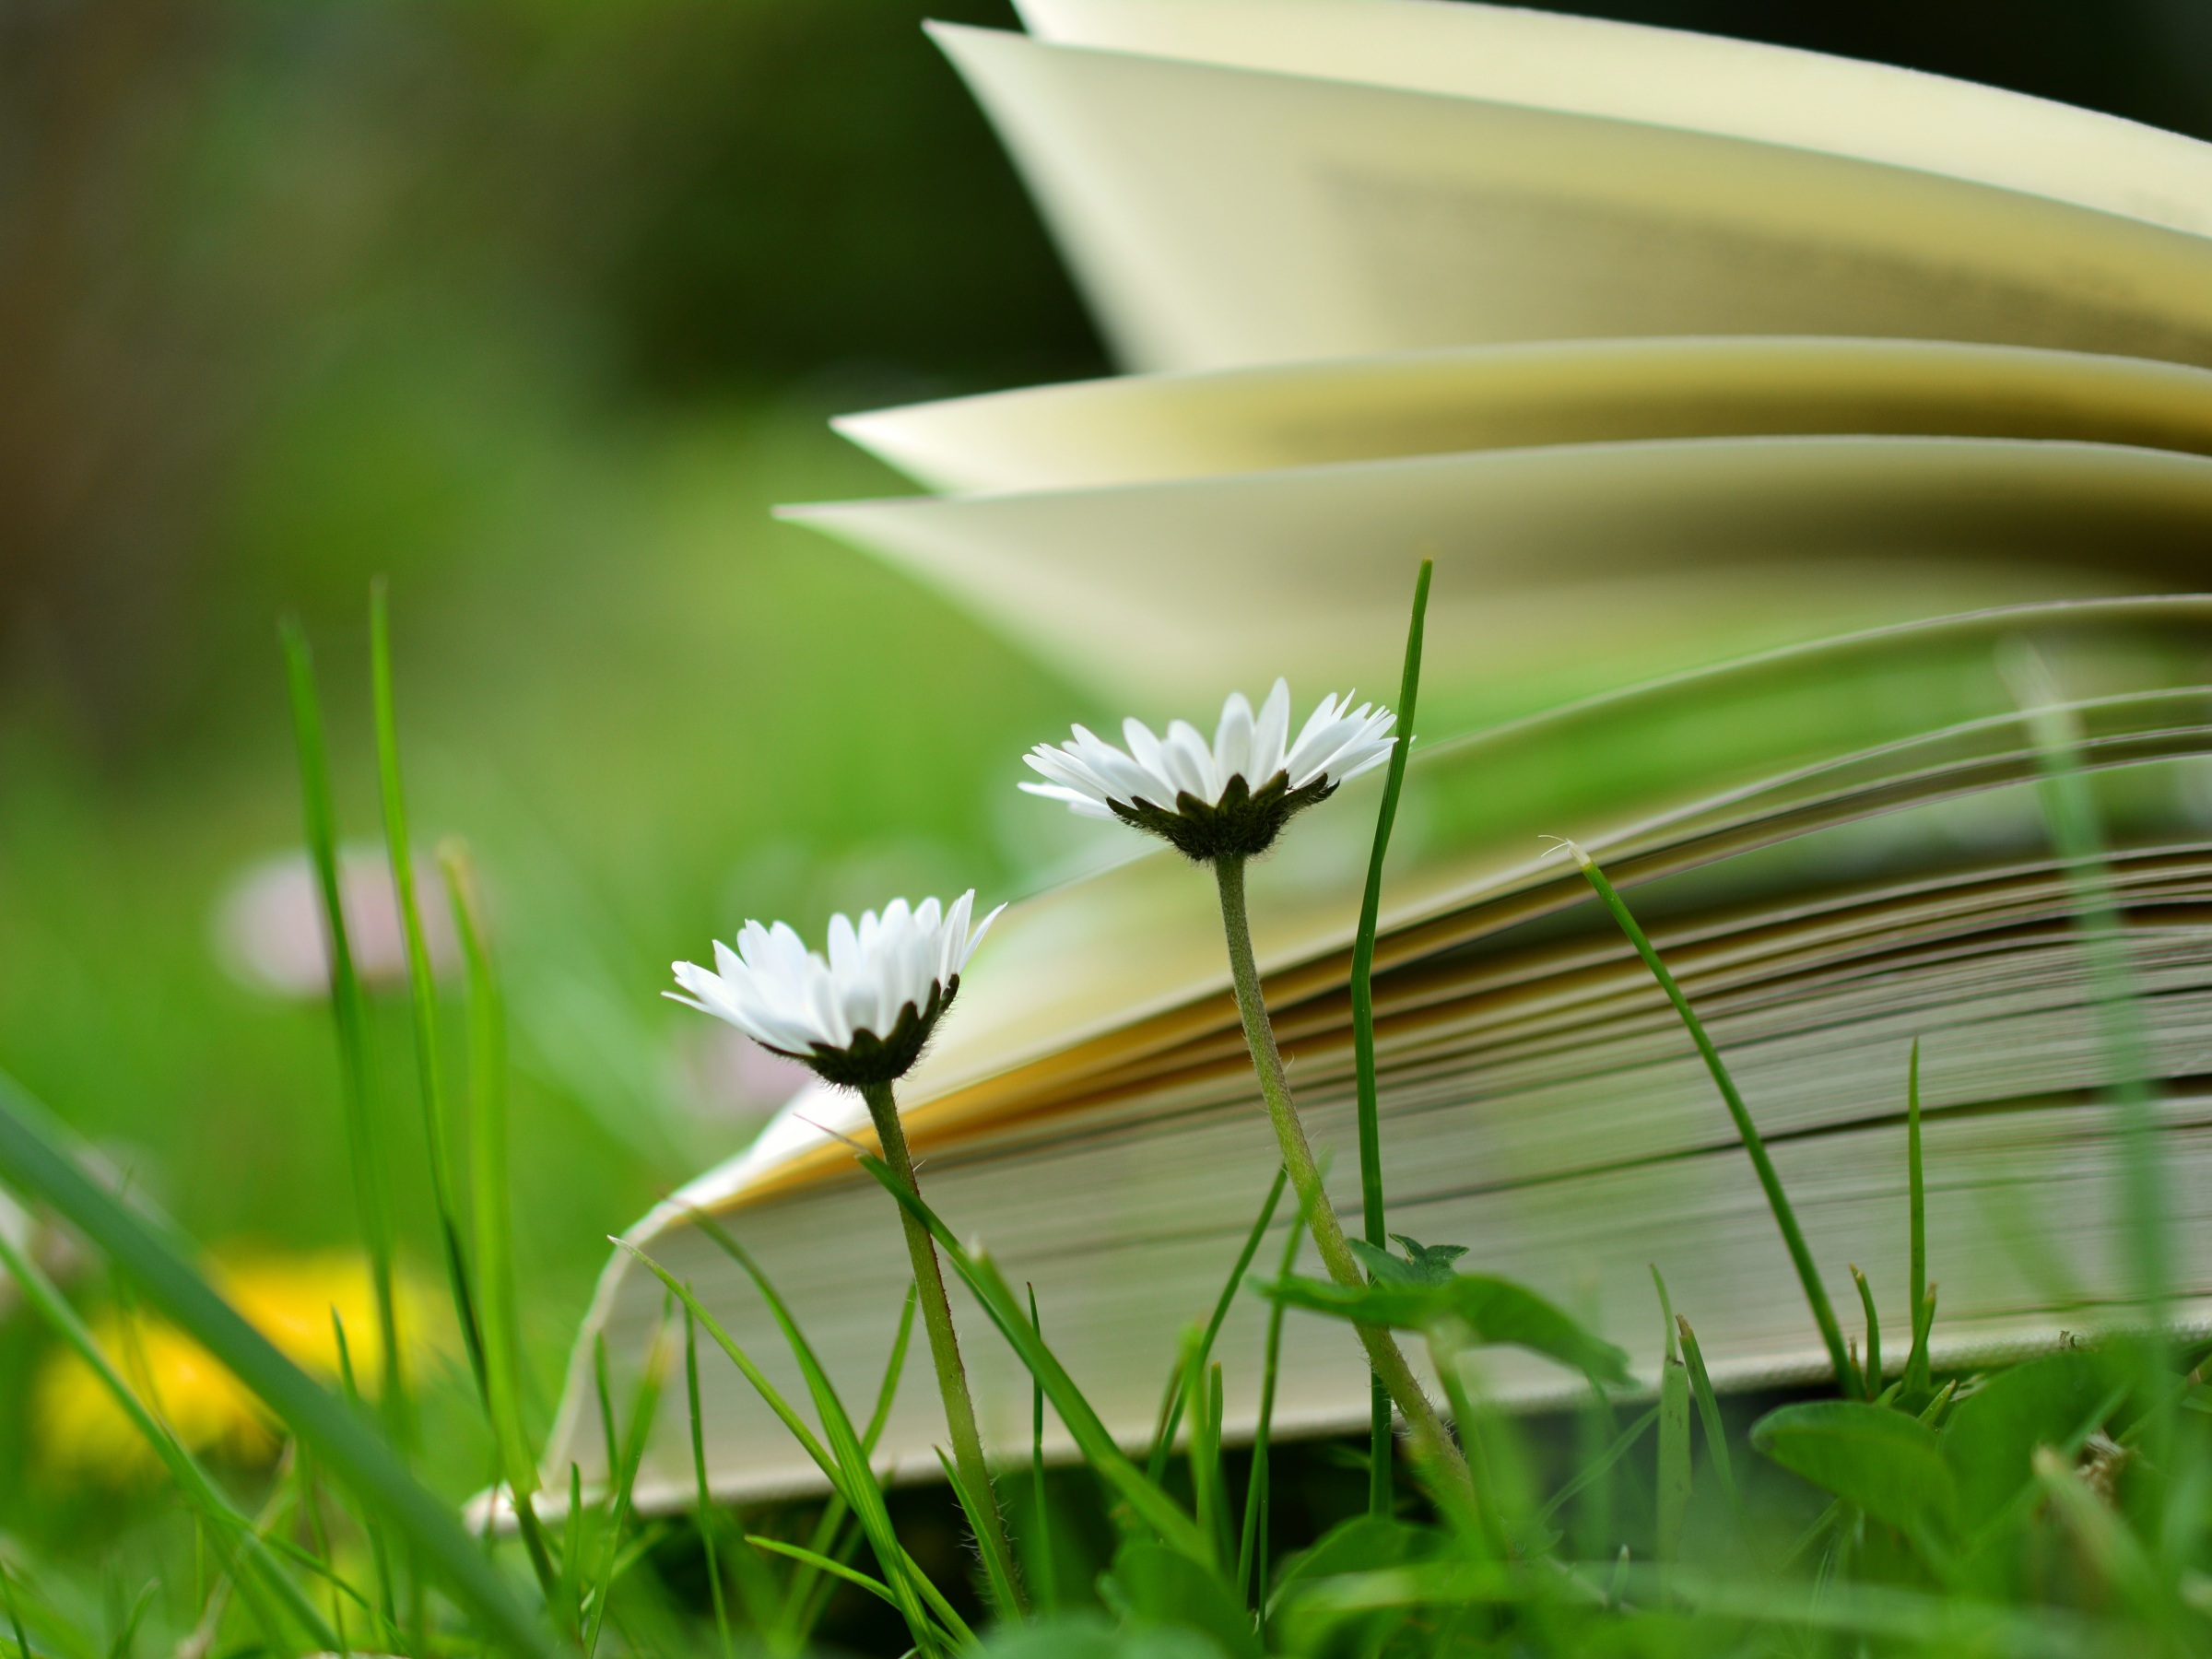 Side view of a book on grass with daisies and dandelions